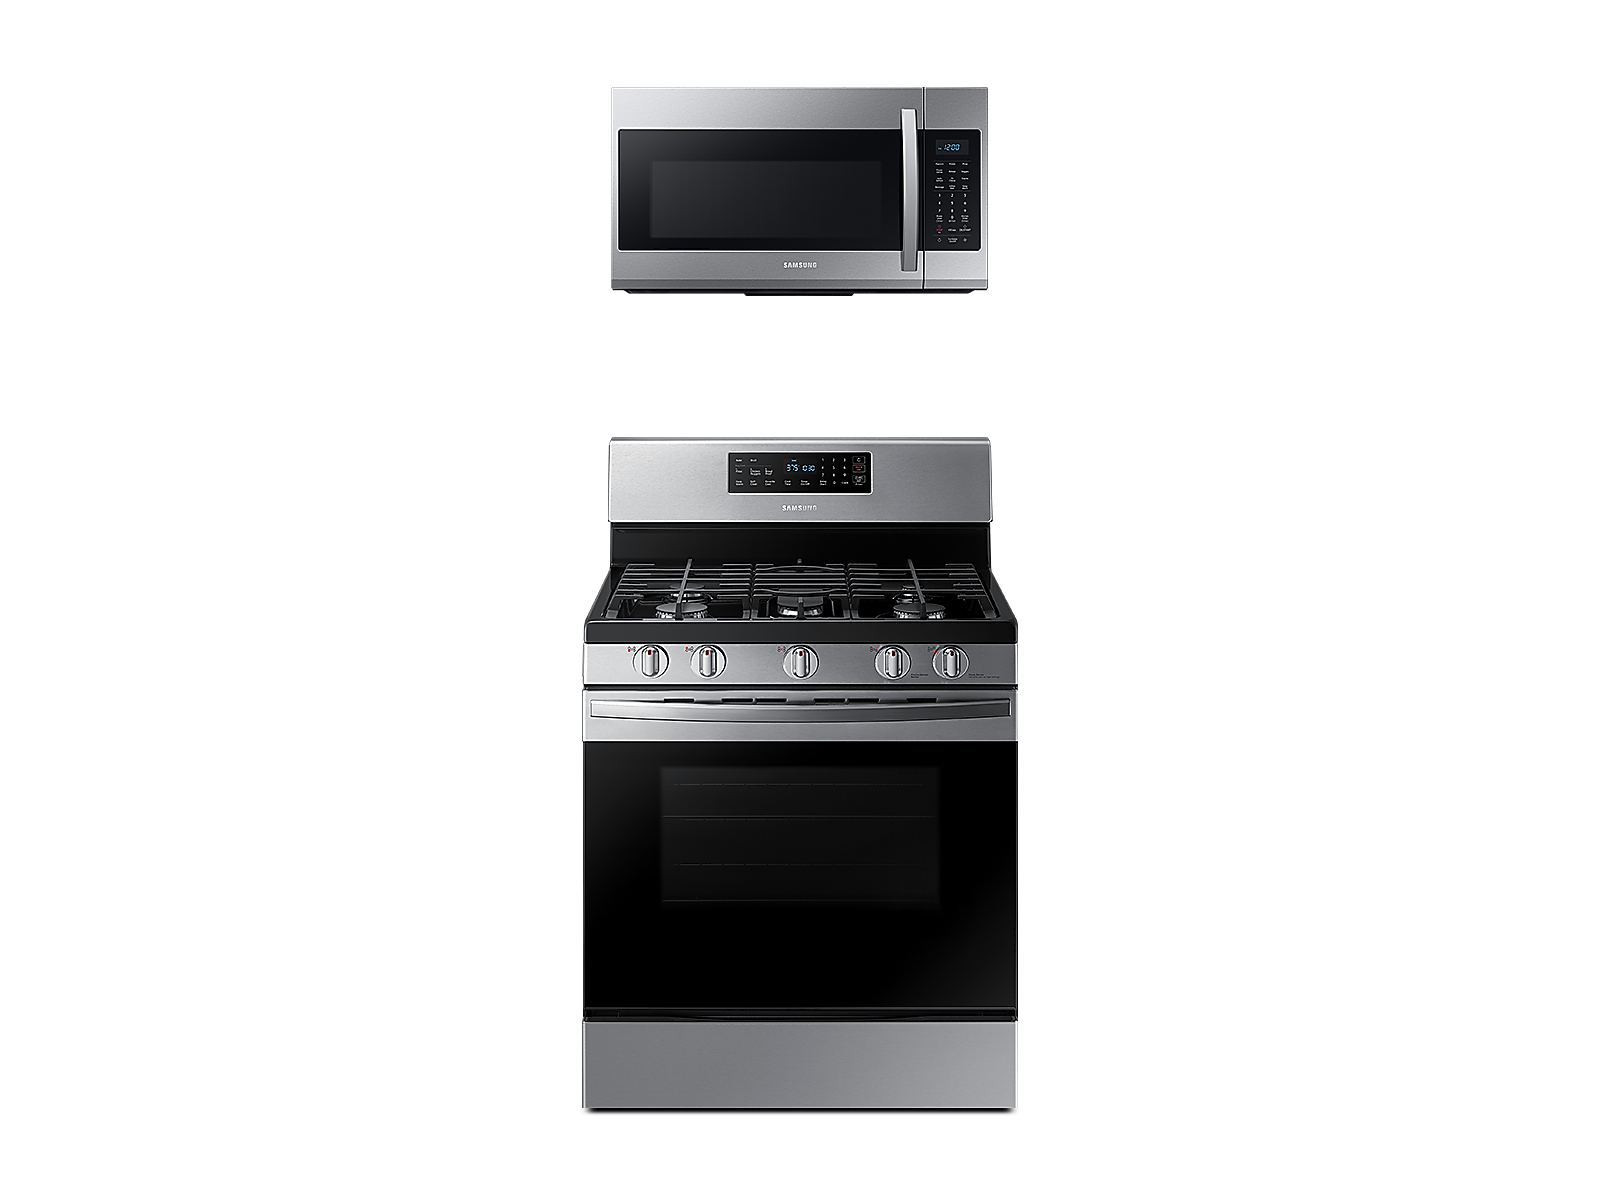 Samsung coupon: Samsung Freestanding Gas Range + Over-the-Range Microwave in Stainless Steel(BNDL-1580226046010)